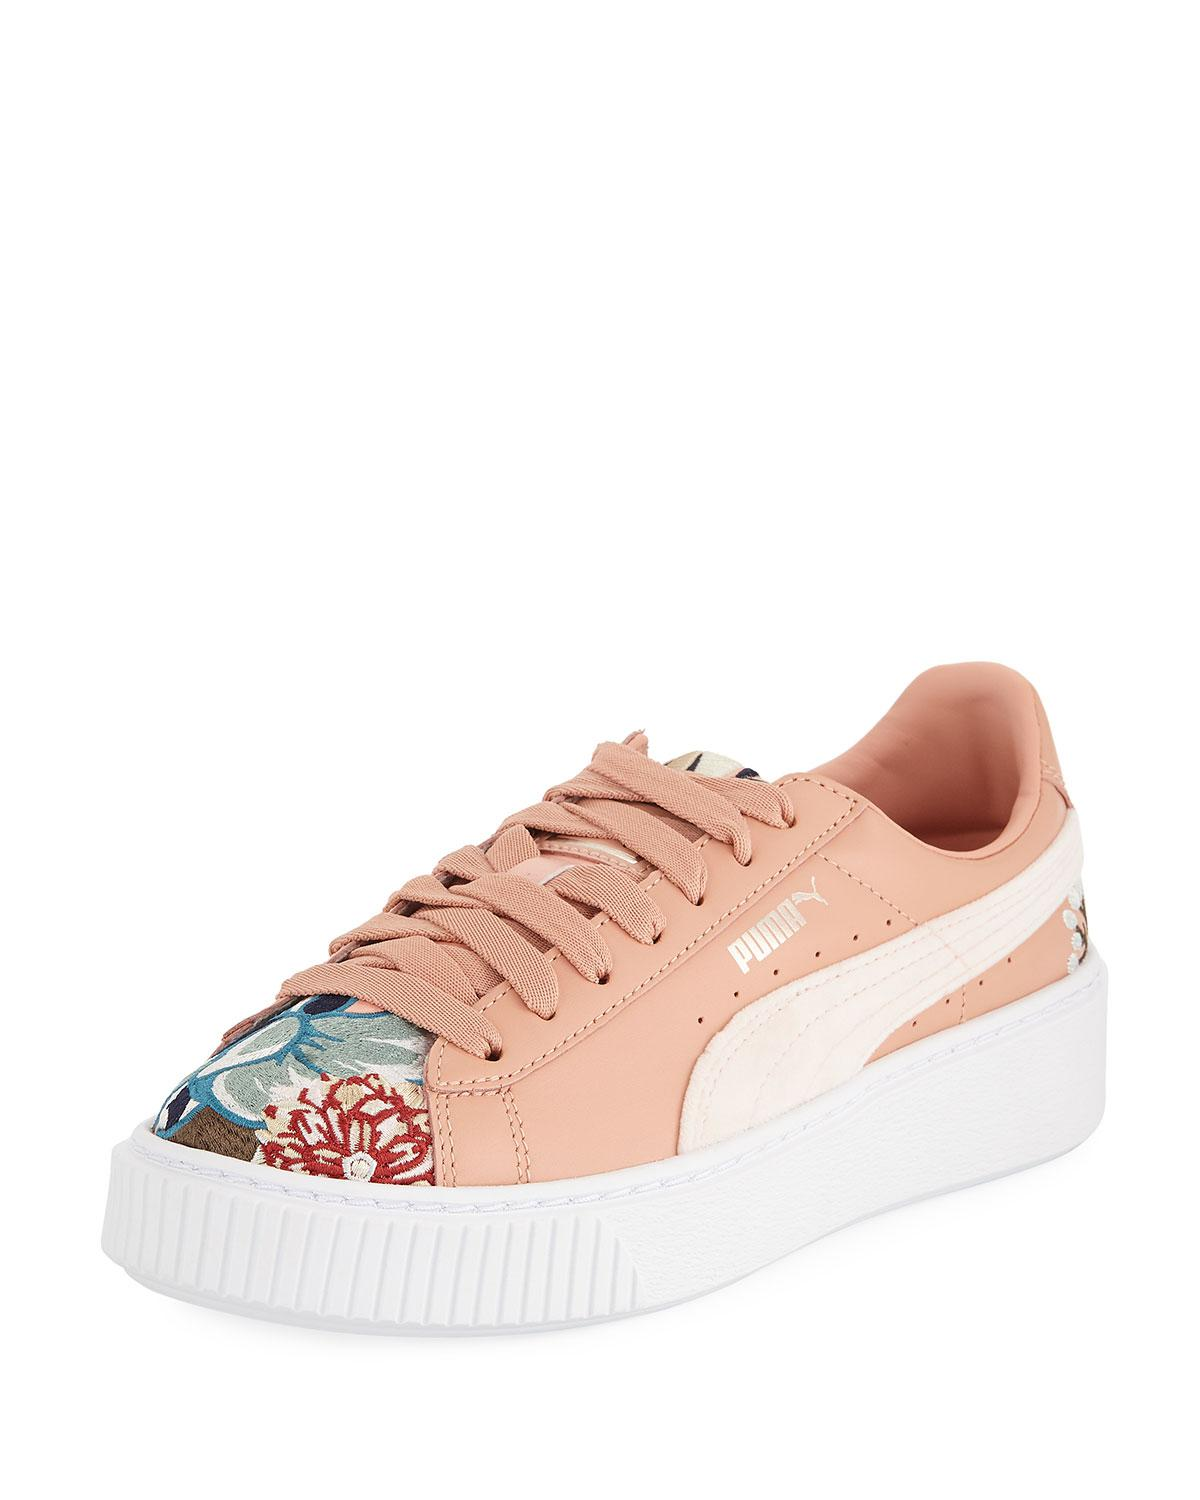 eacf116b467 Lyst - PUMA Hyper Embroidered Platform Sneakers in Natural